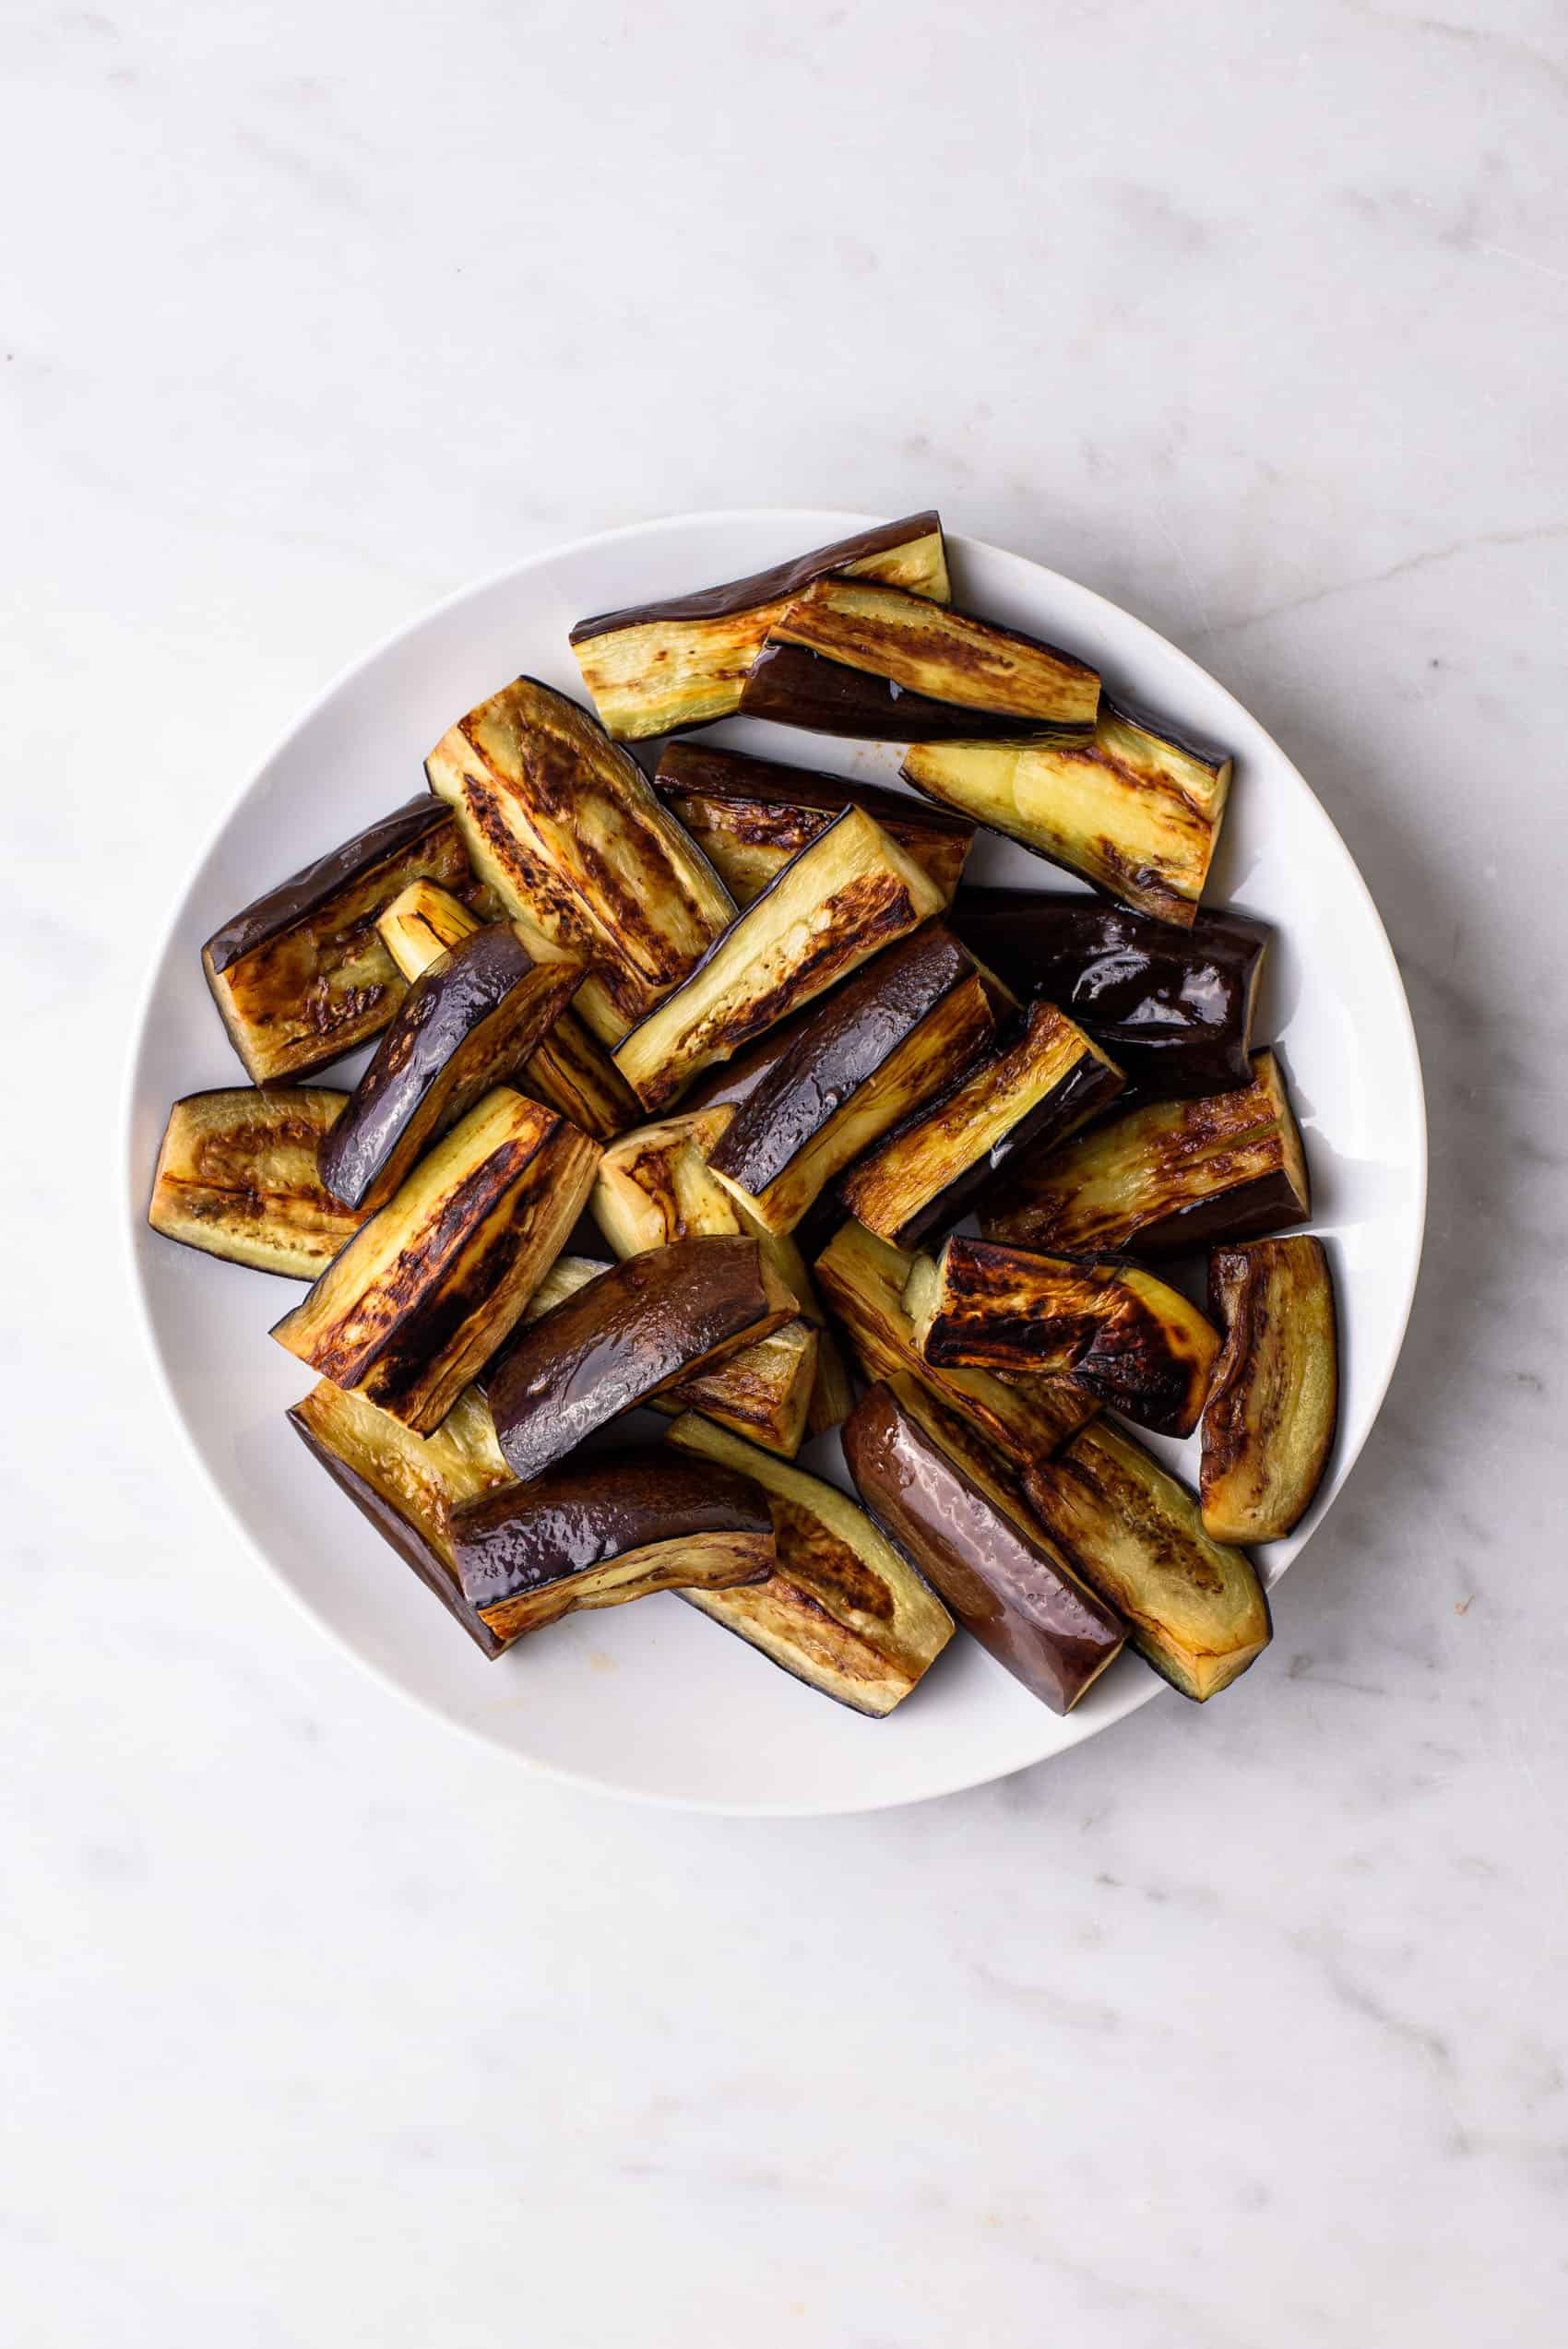 Caramelized pan-fried eggplant on a white plate